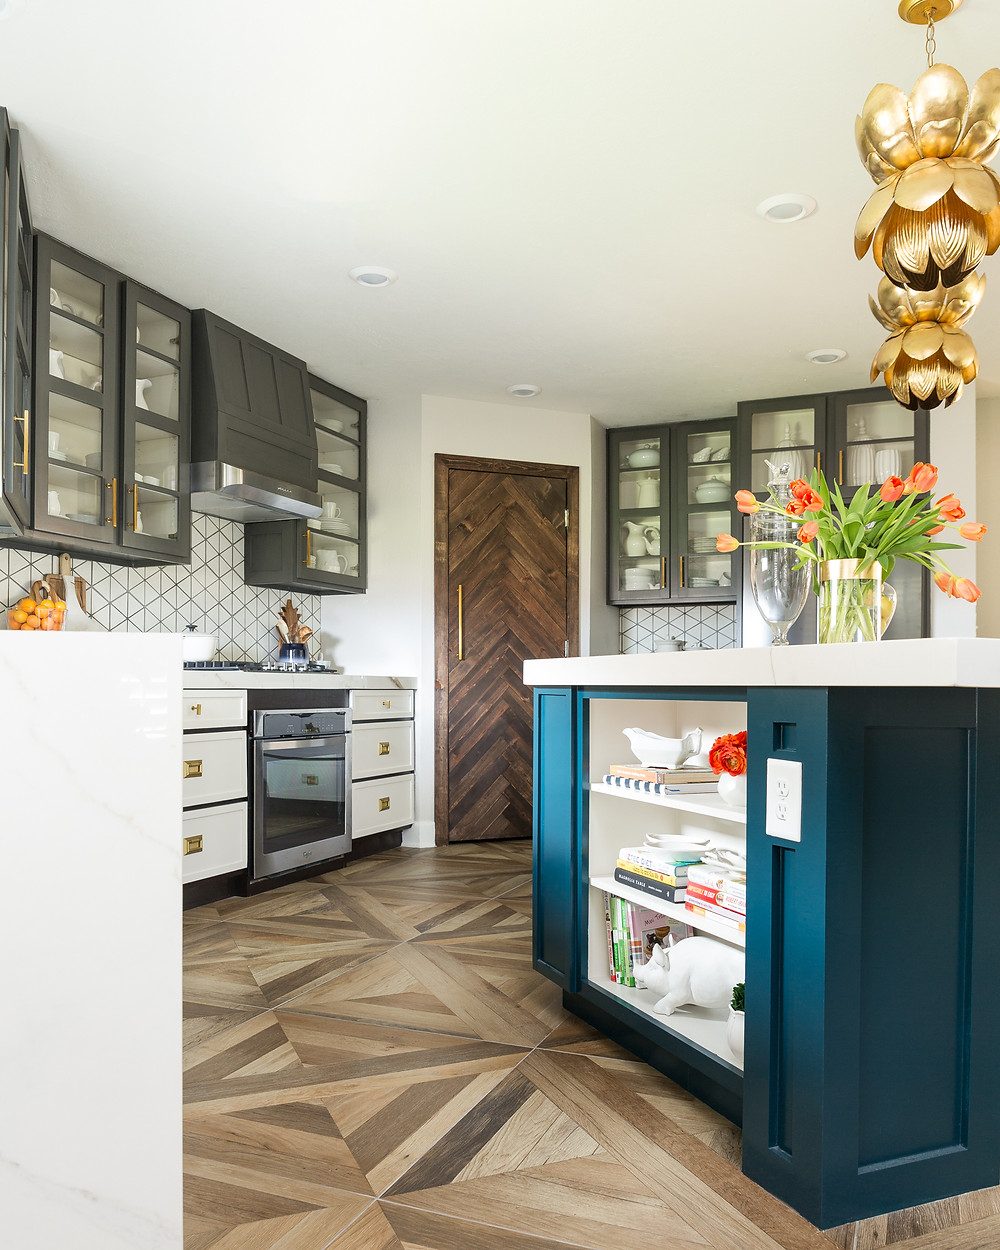 Kitchen design with blue island and gray and white cabinets